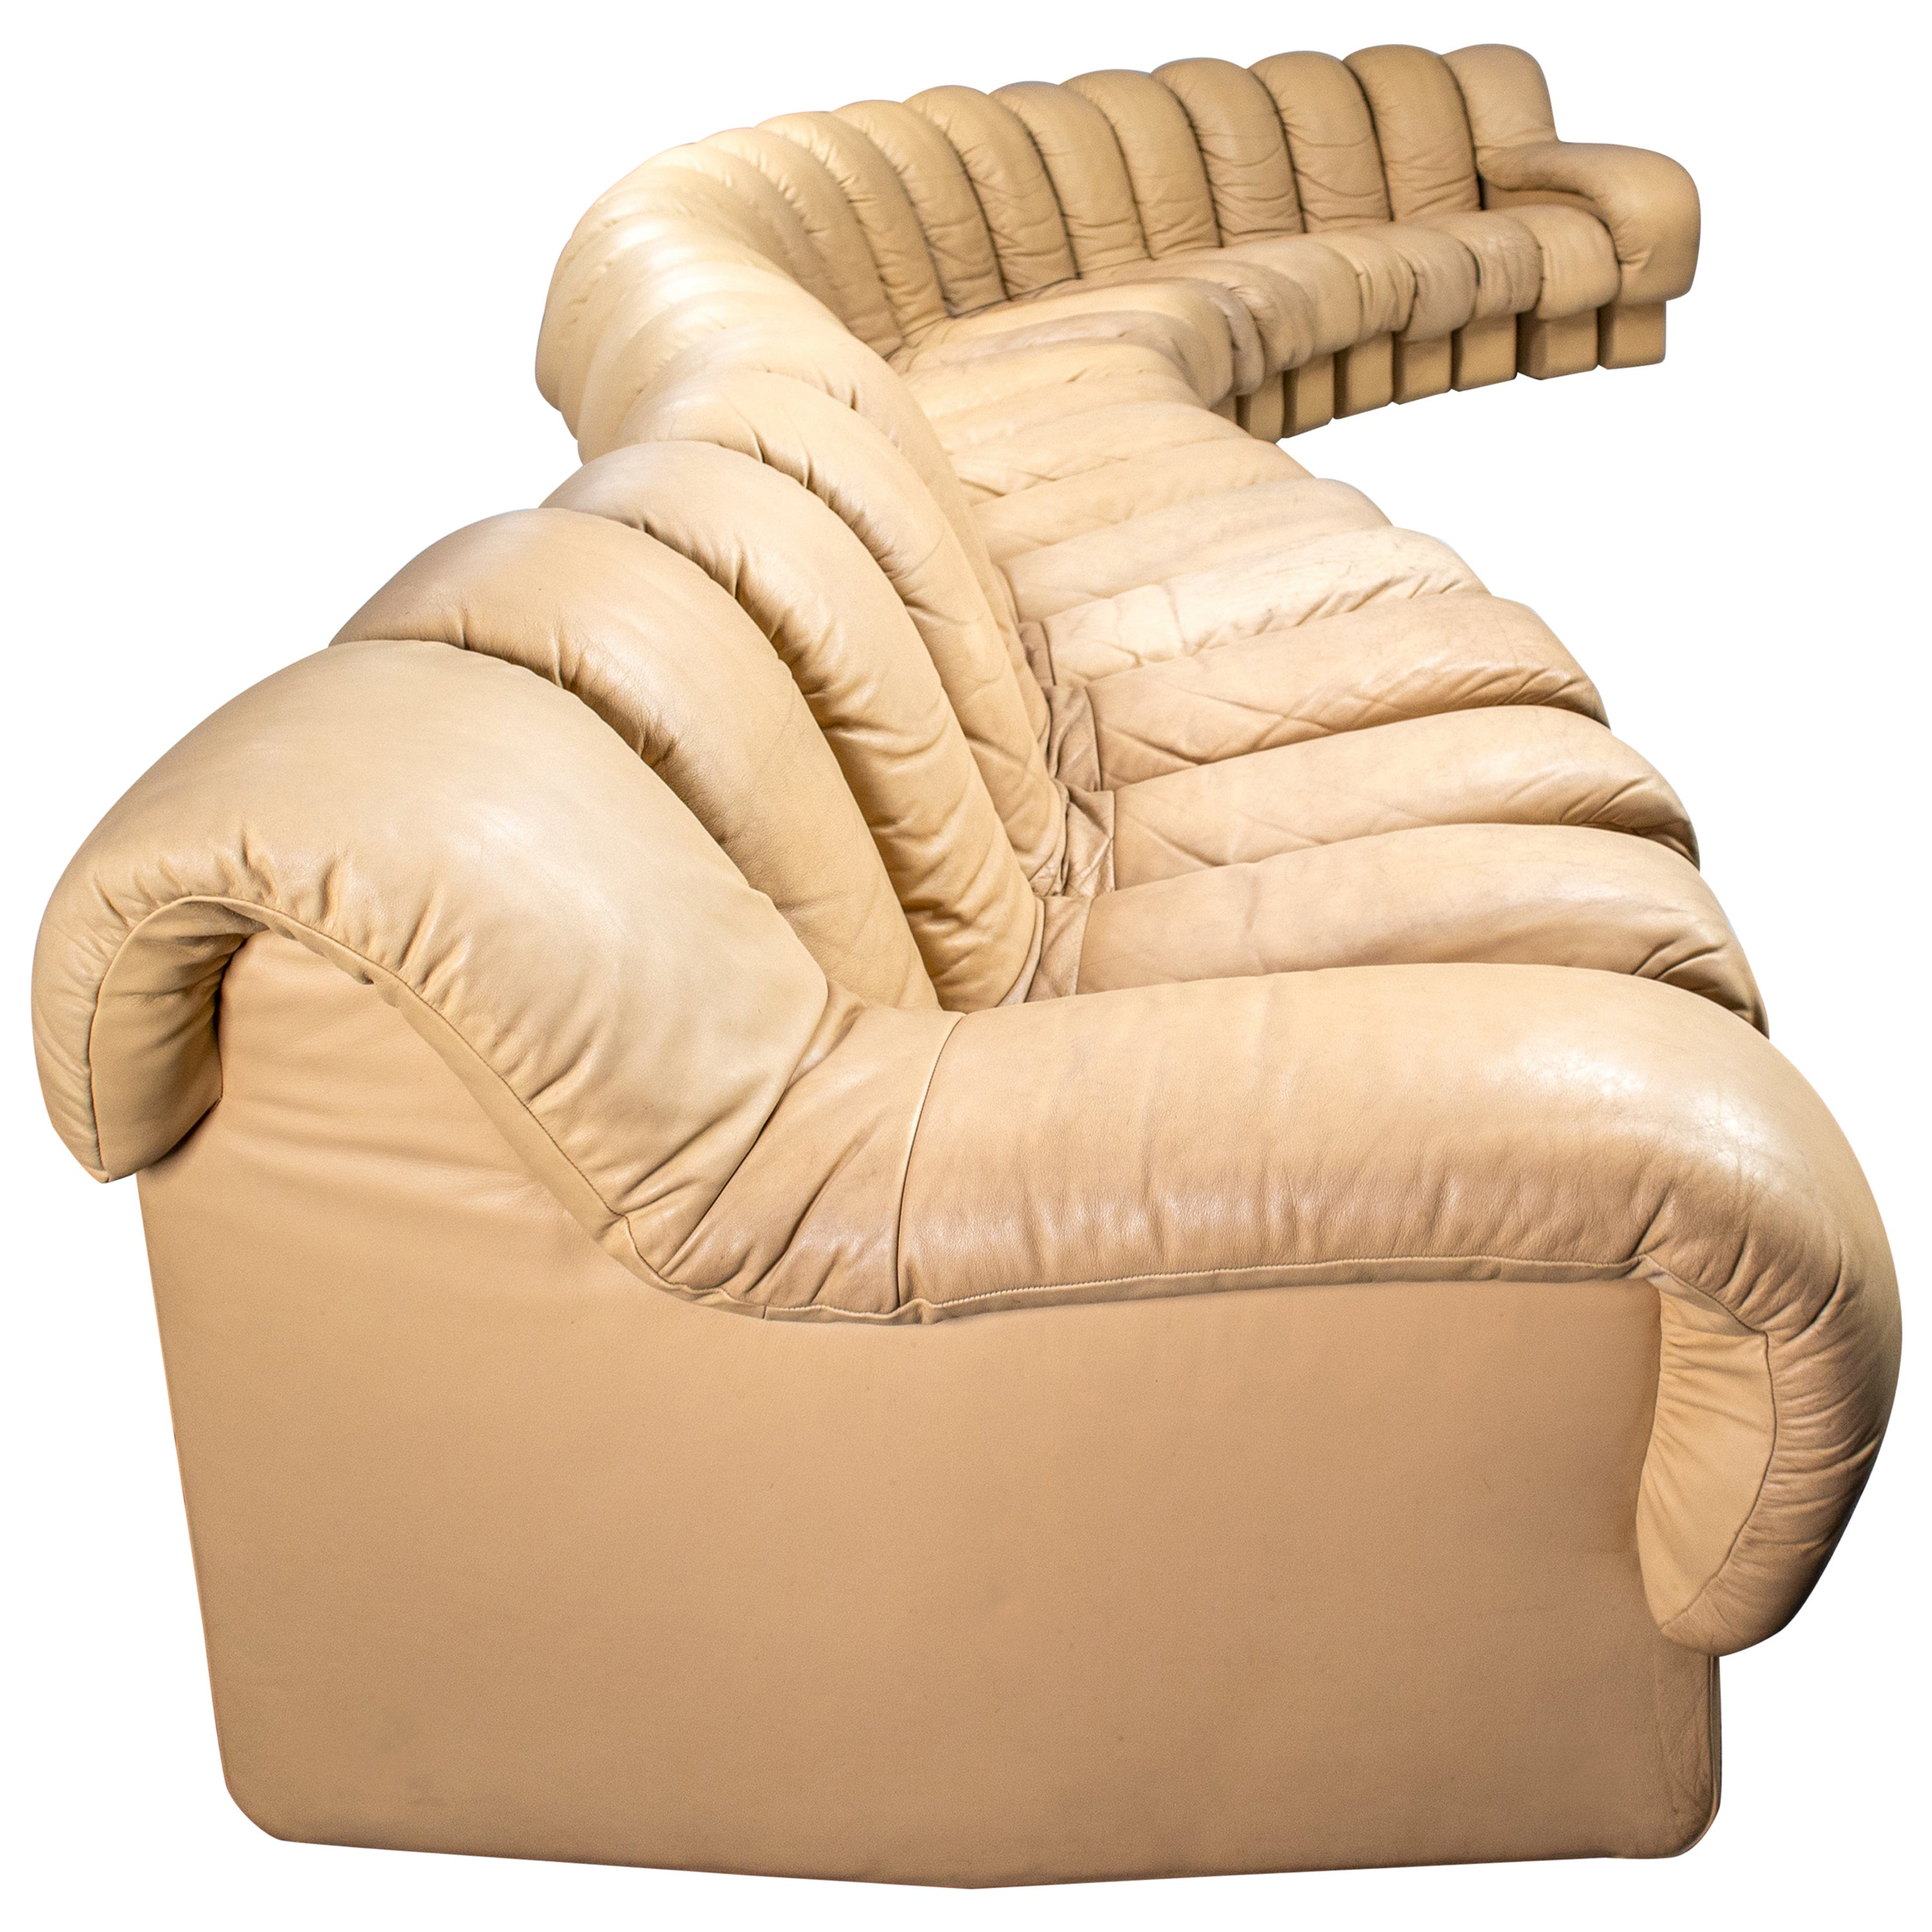 De Sede DS 600 Snake Sofa in Full Creme Leather by Ueli Berger Switzerland 1972